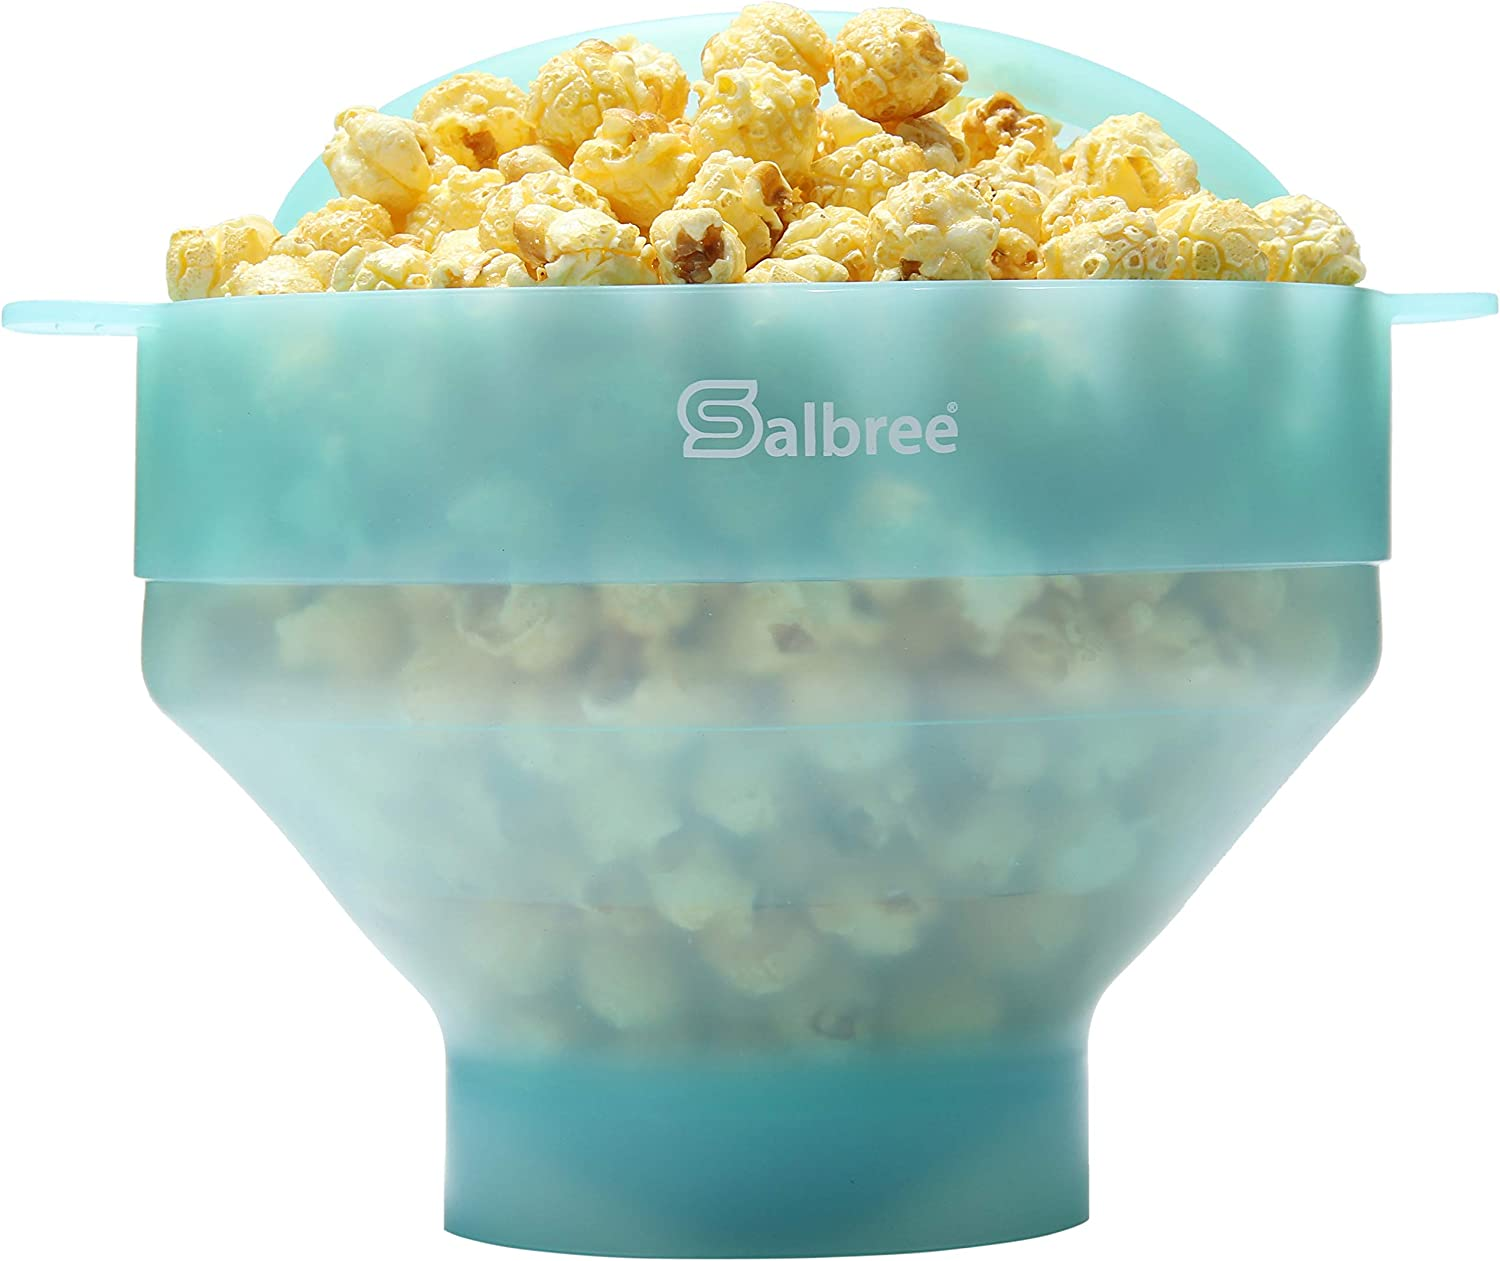 Original Salbree Microwave Popcorn Popper, Silicone Popcorn Maker, Collapsible Bowl BPA Free - 18 Colors Available (Transparent Mint)